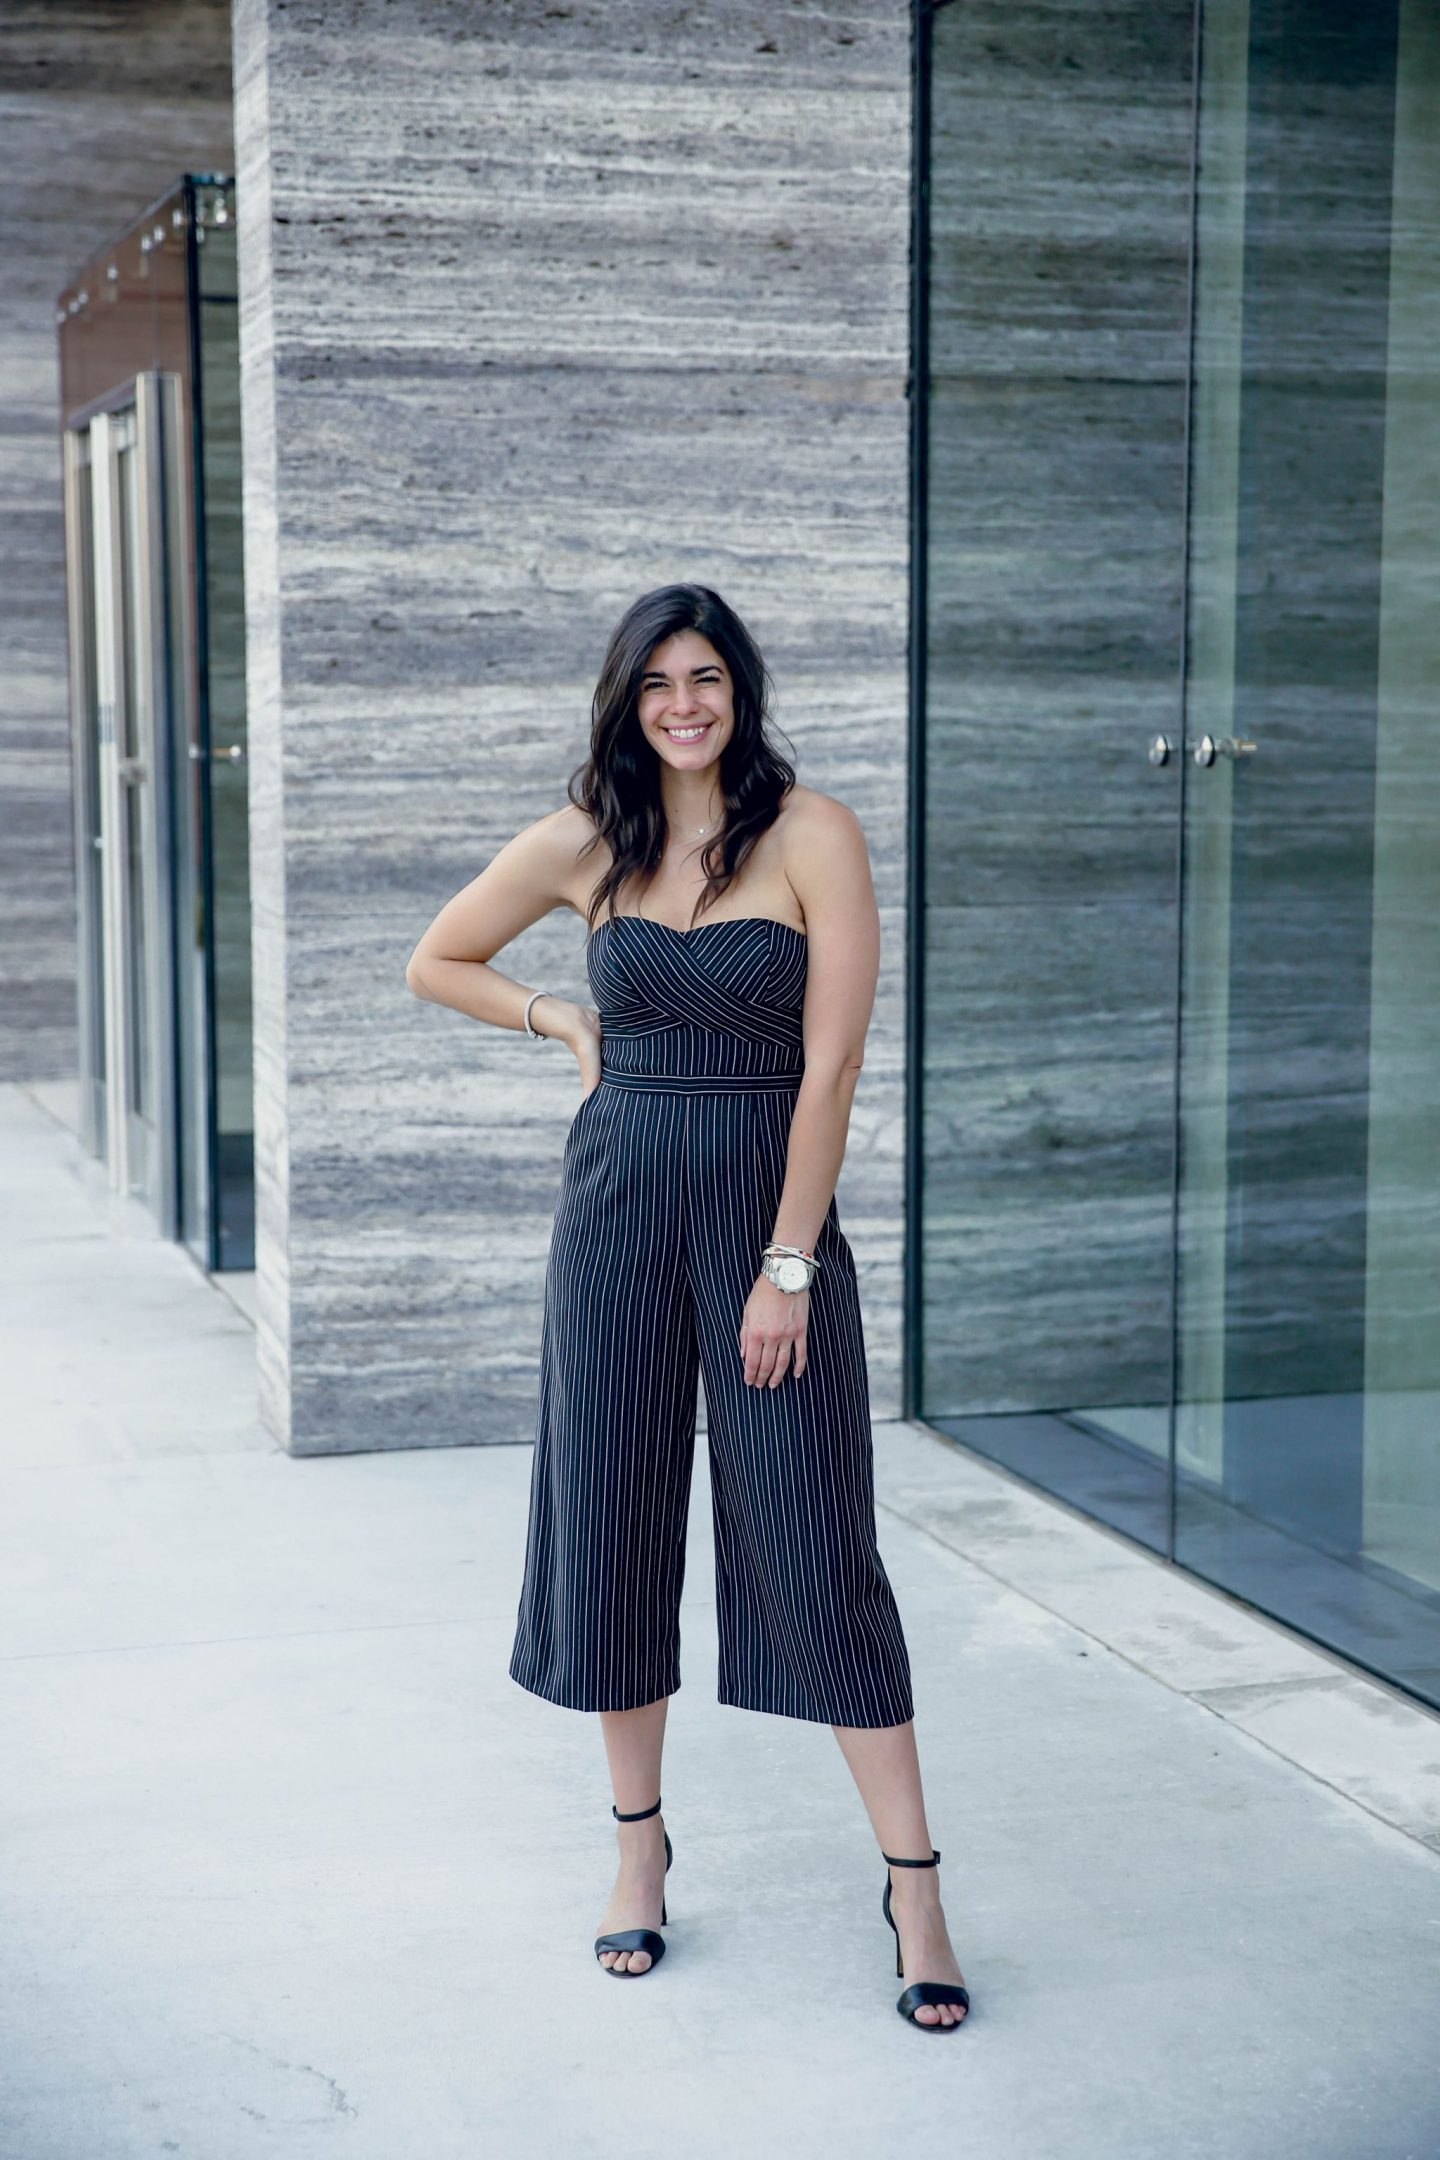 jumpsuits for date night or girls night out - black & white stripe jumpsuit - Lauren Schwaiger style blog